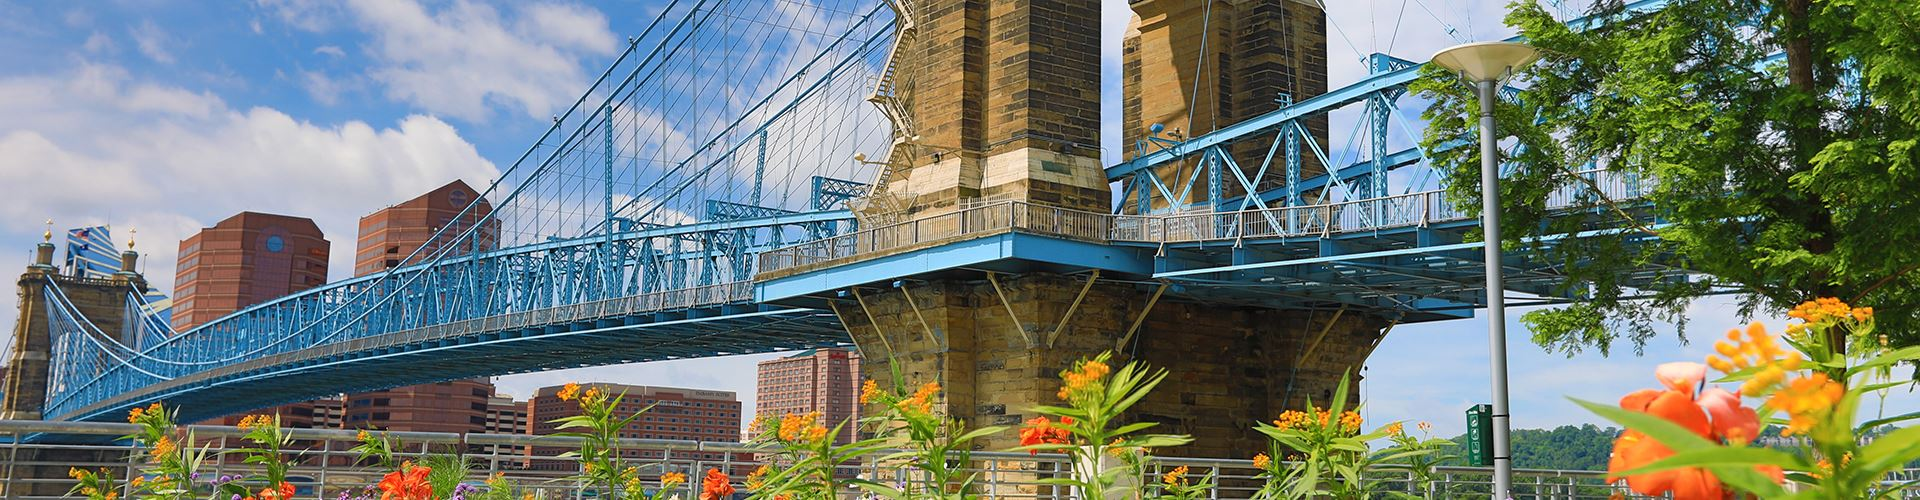 The John A. Roebling Bridge spanning the Ohio River with flowers and trees in the foreground